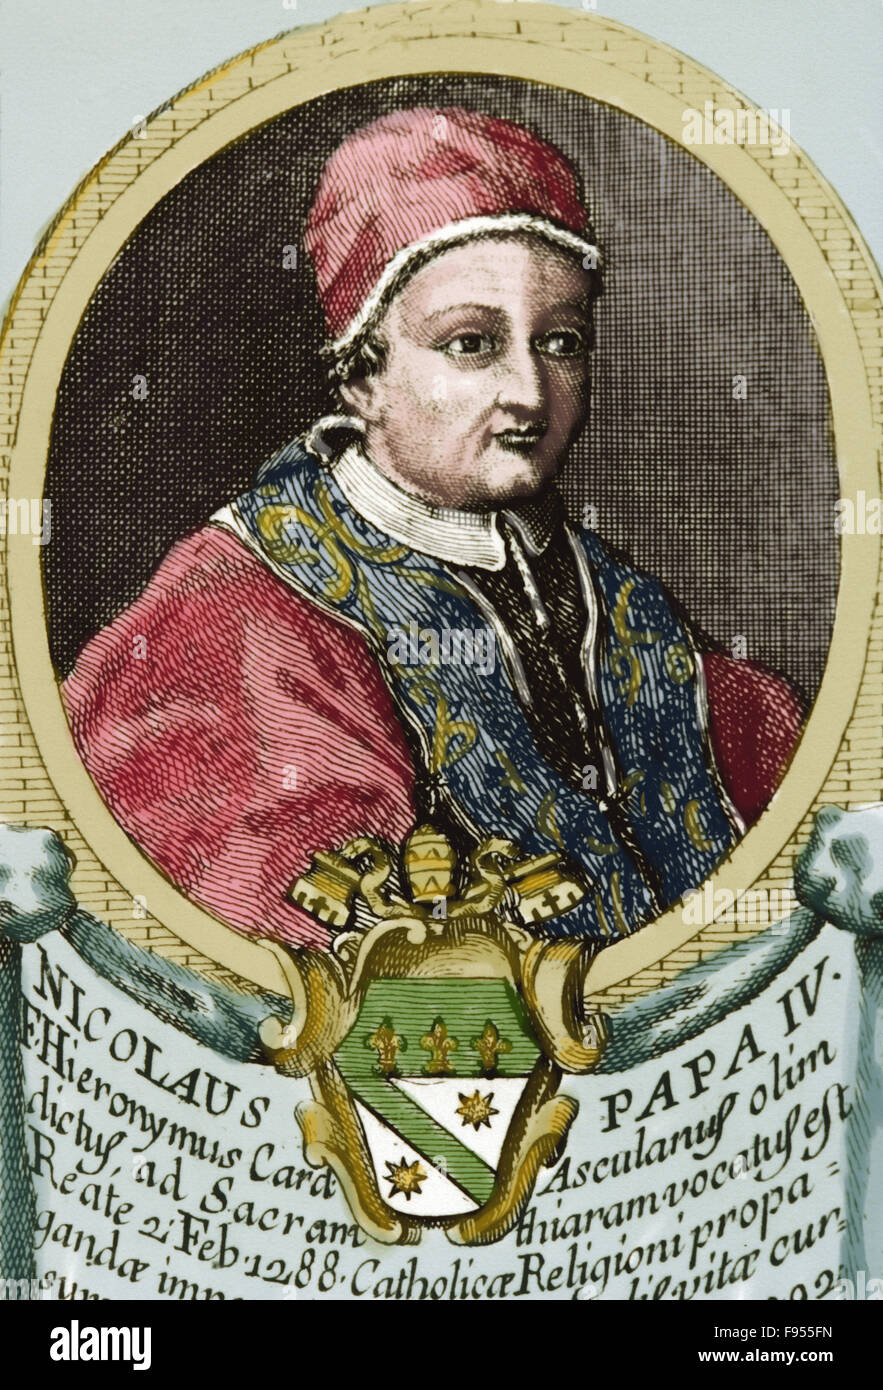 Pope Nicholas IV (1227-1227). Born Girolamo Masci. Pope from 1288-1292. Portrait. Engraving. Colored. - Stock Image